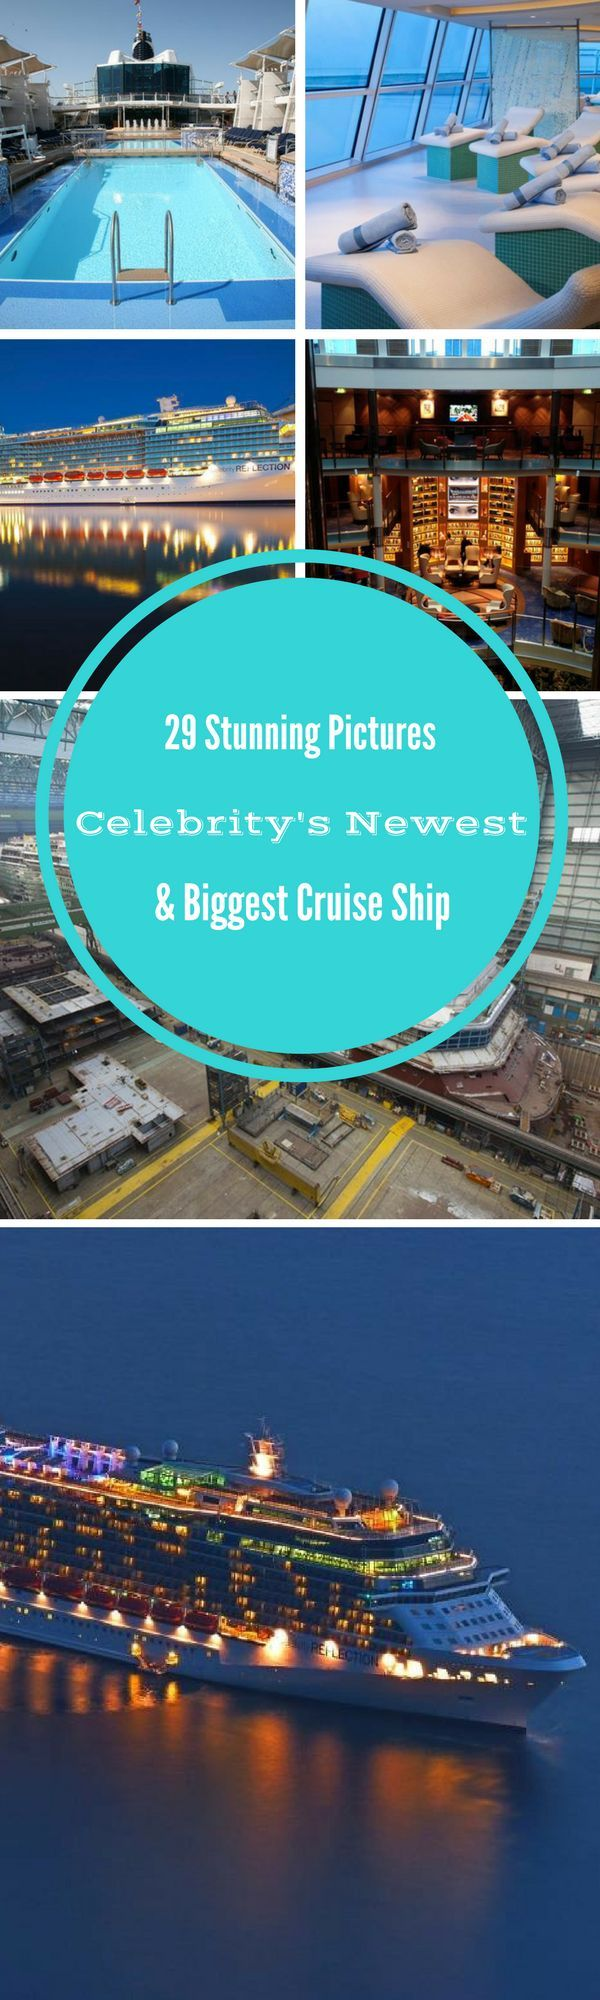 29 Stunning Pictures of Celebrity's Newest and Biggest ...